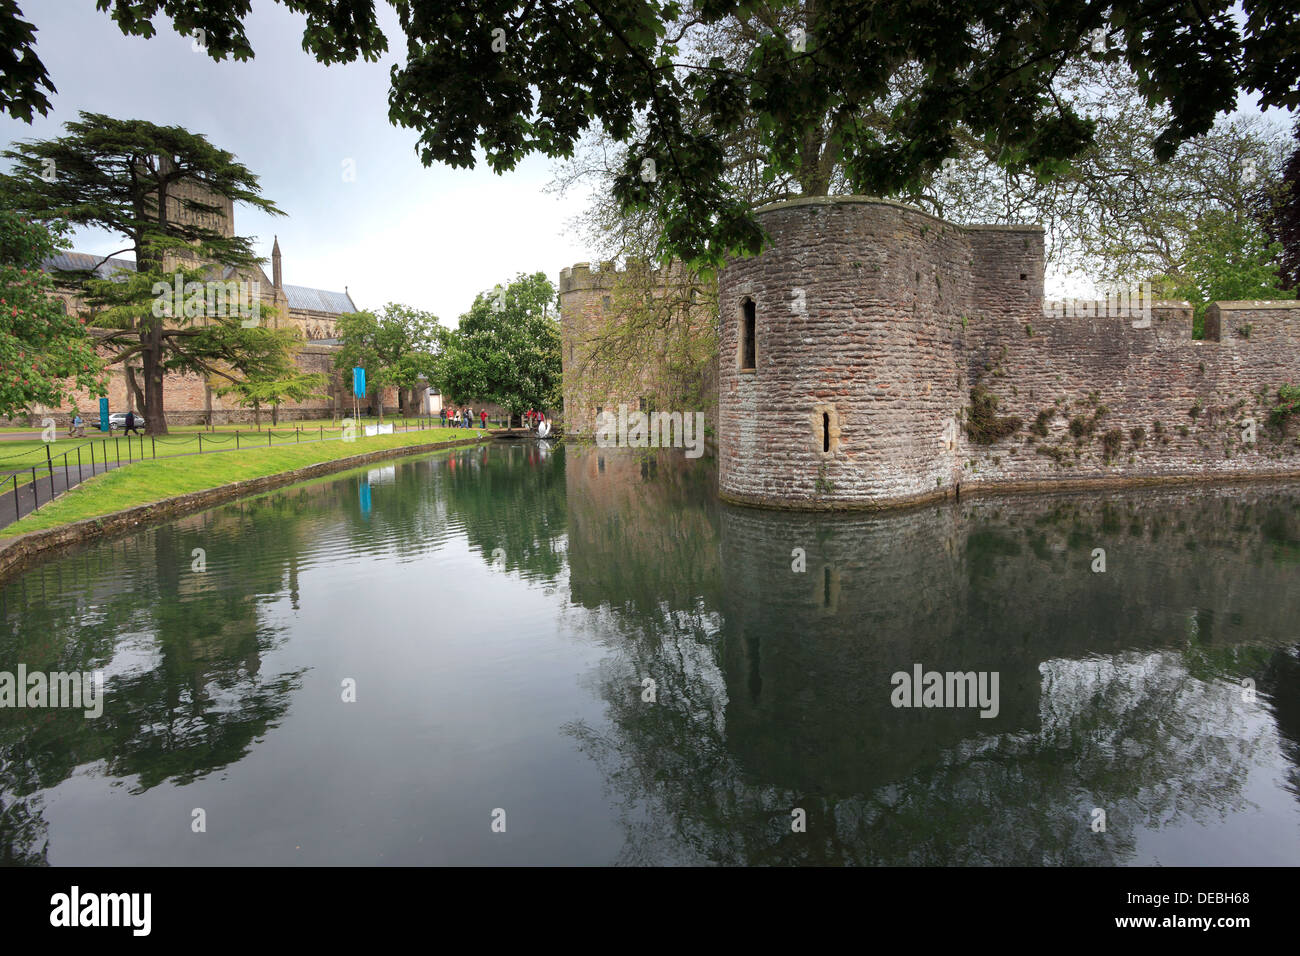 Bishops Palace, Wells City, Englands smallest City, Somerset County, England, Britain, UK - Stock Image